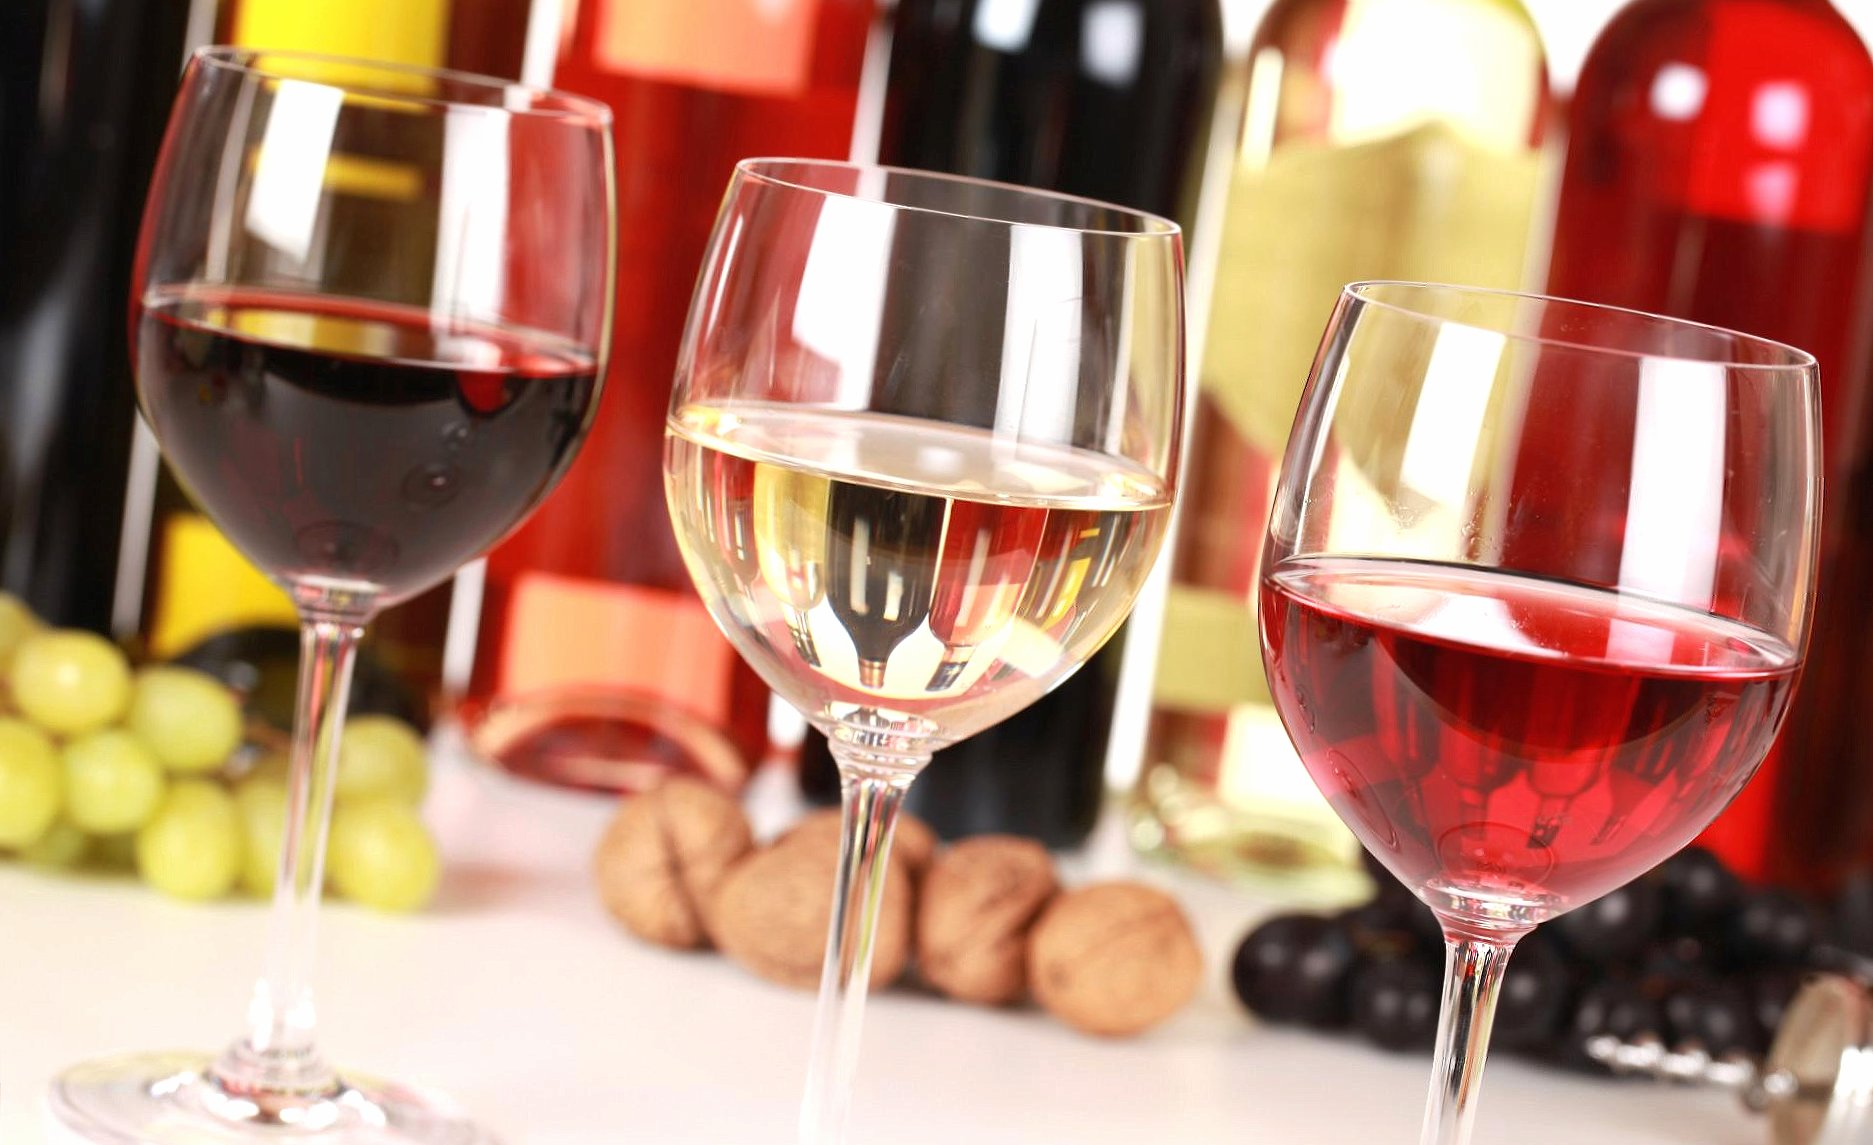 Wine in glasses wallpapers HD quality